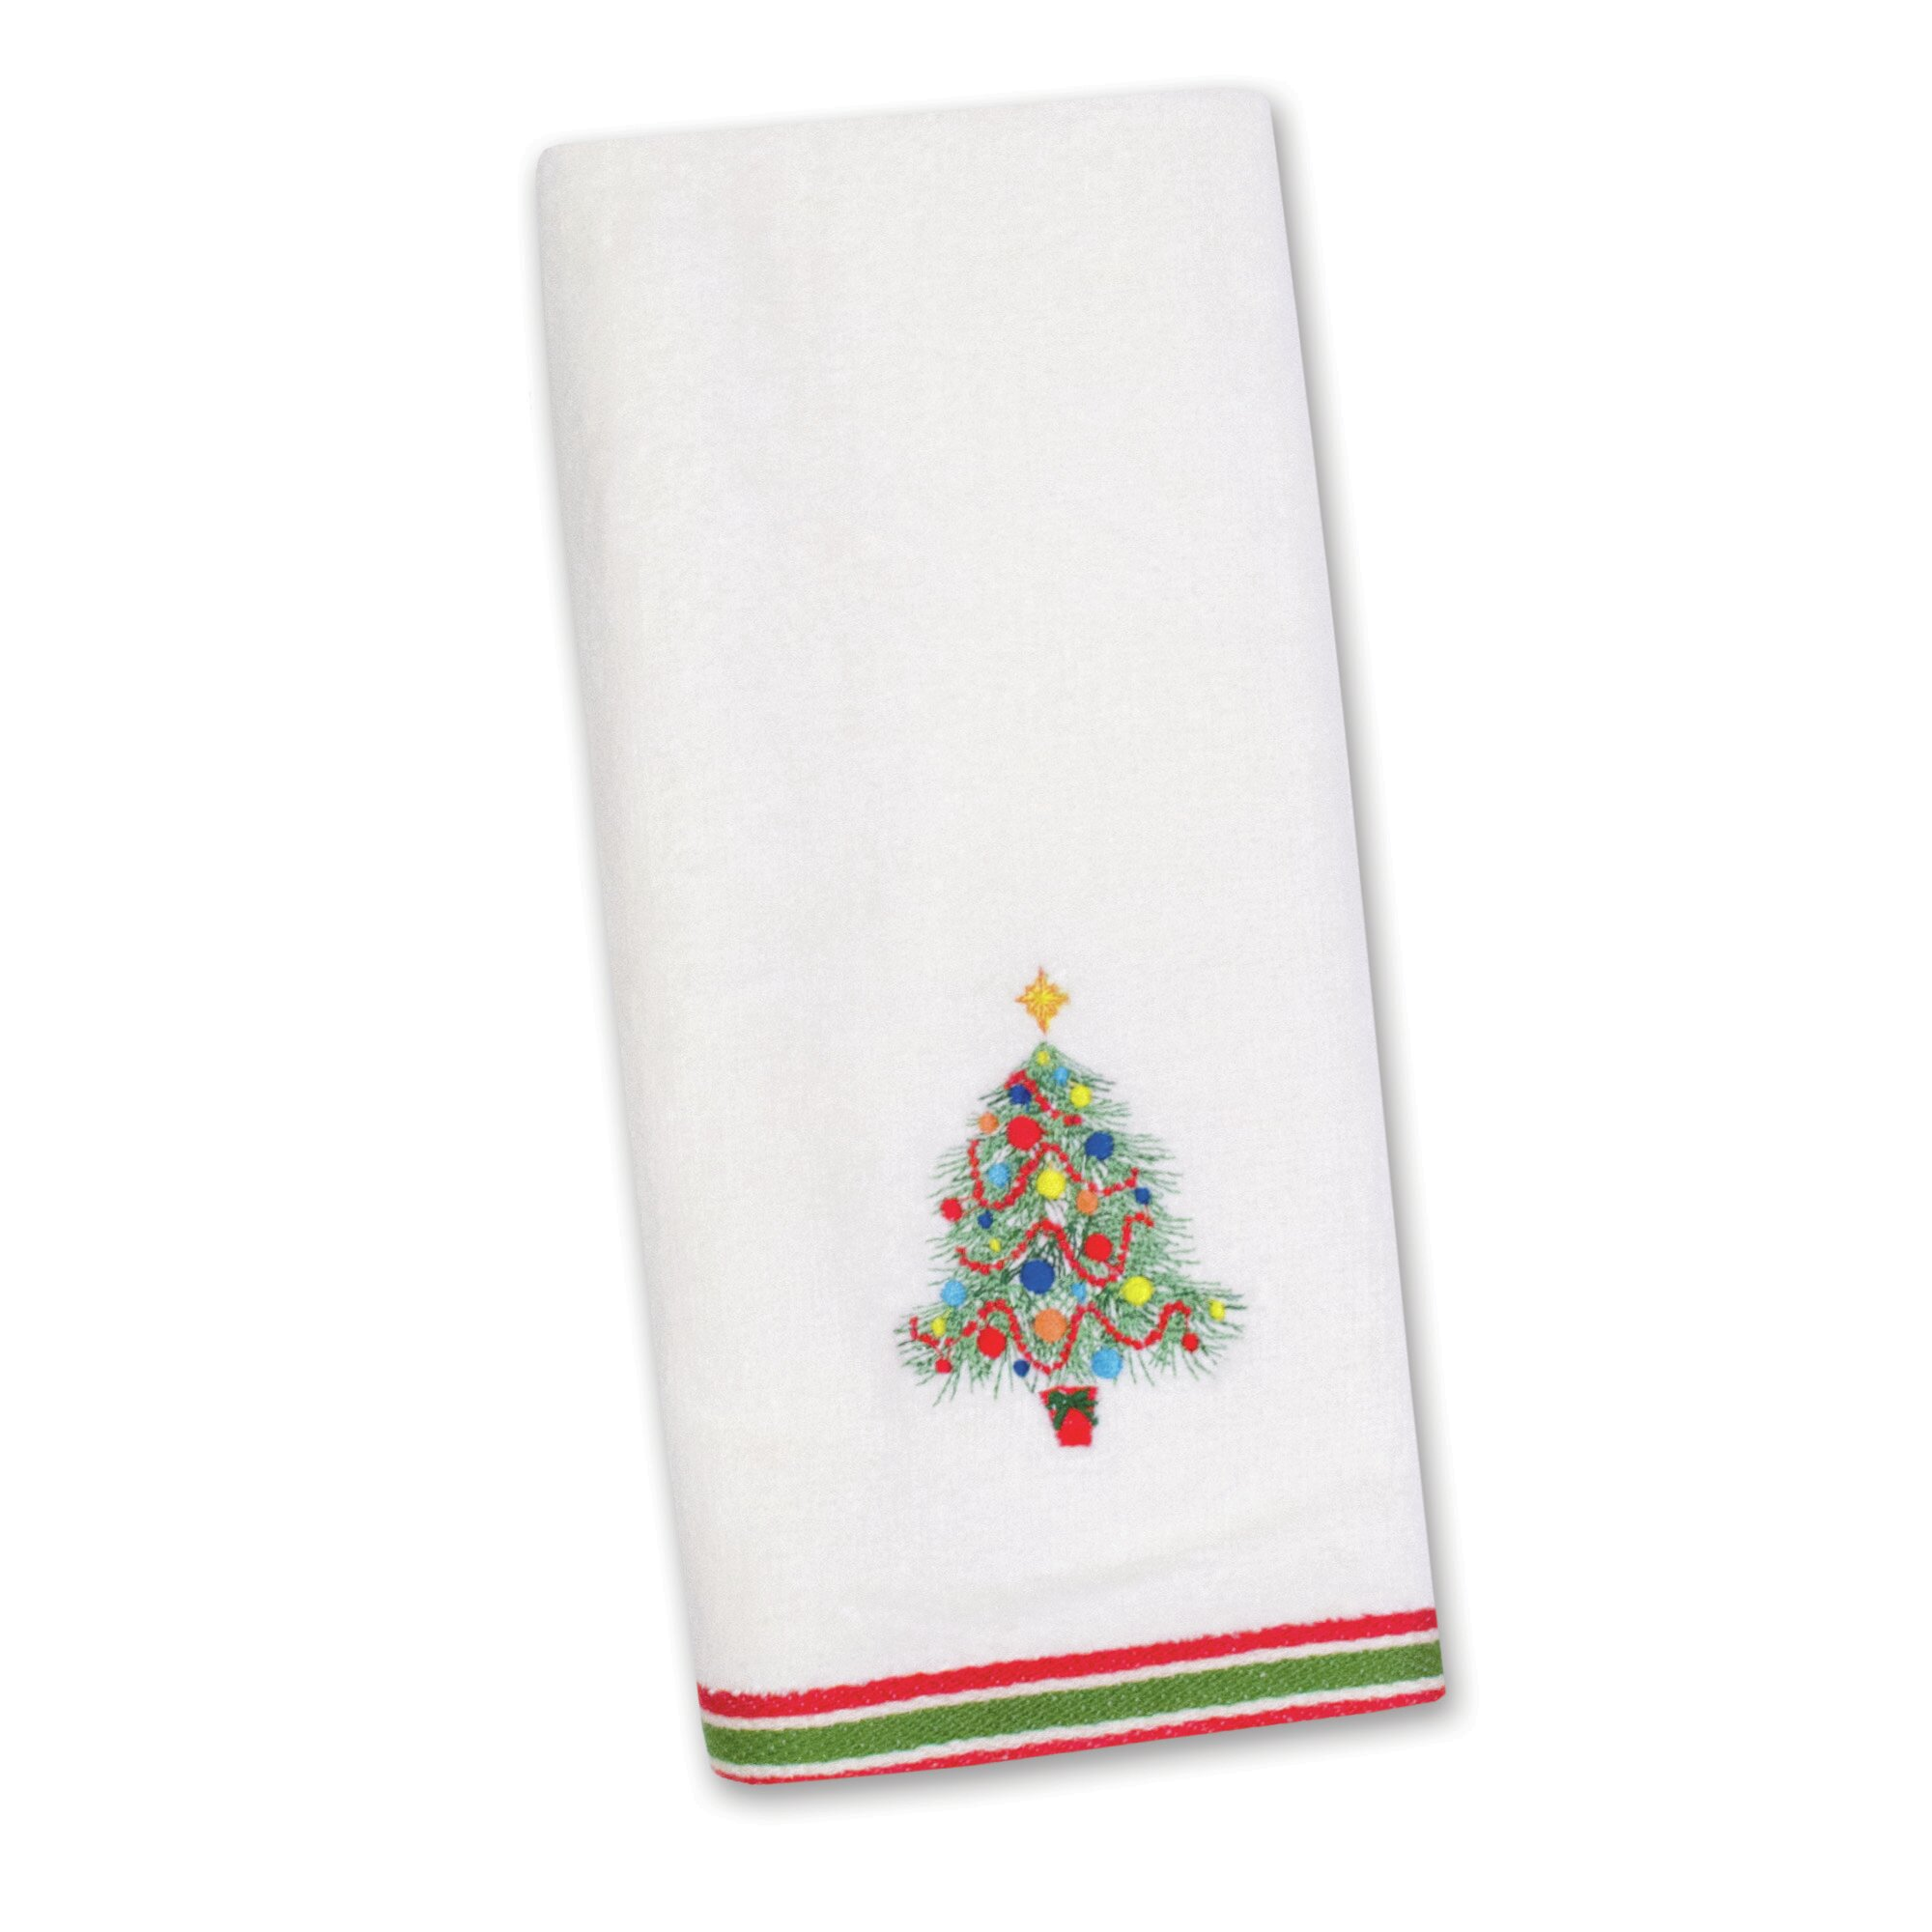 Fiesta Christmas Tree Embroidered Kitchen Towel Reviews